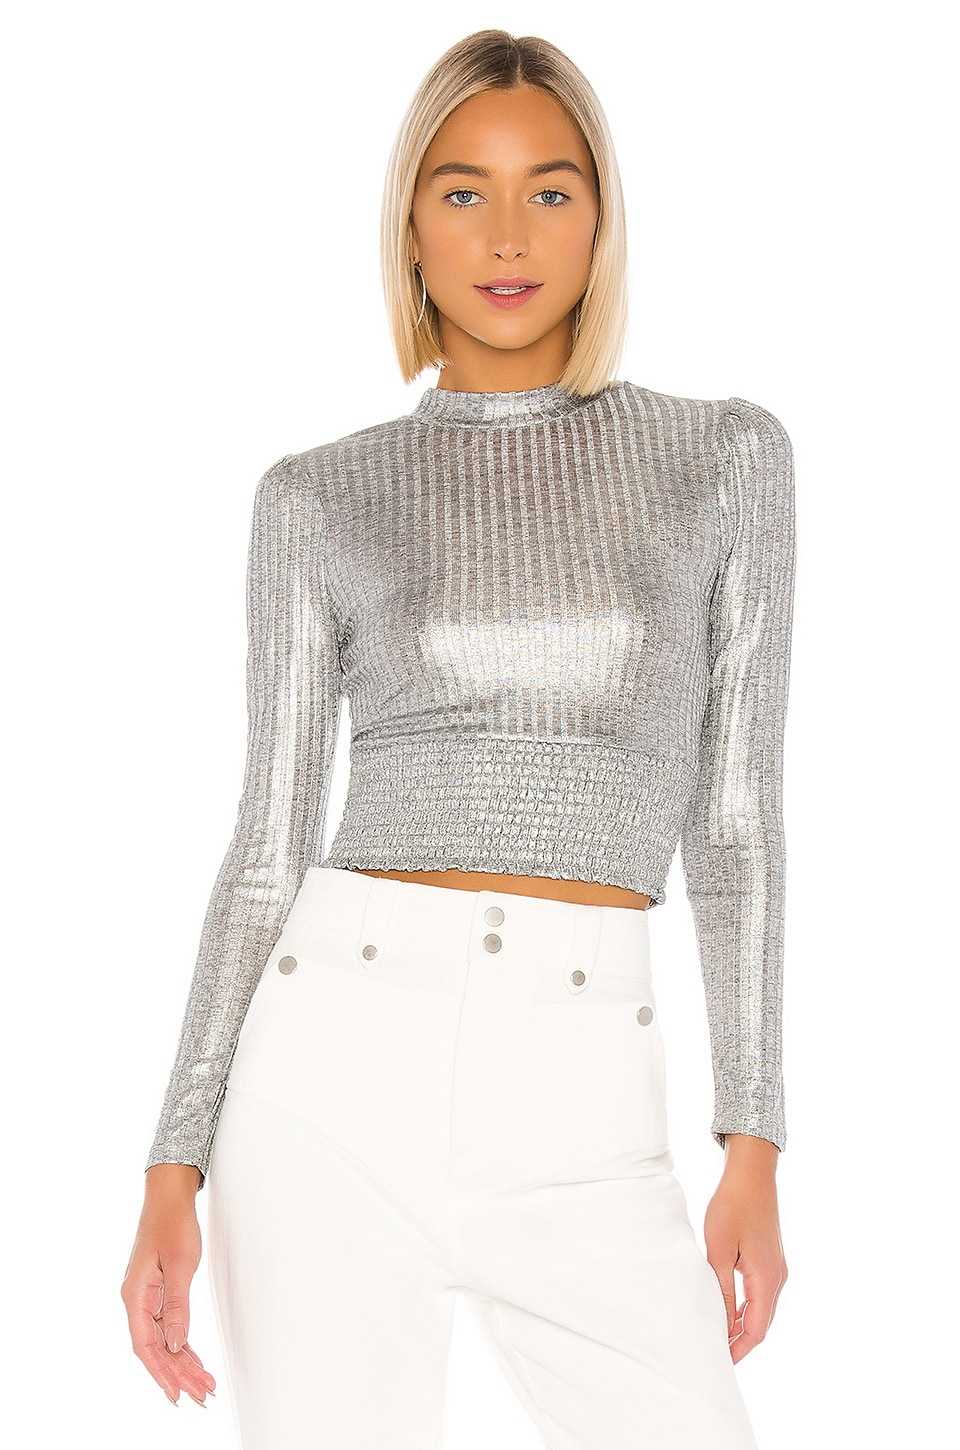 Tularosa Colette Top in Silver